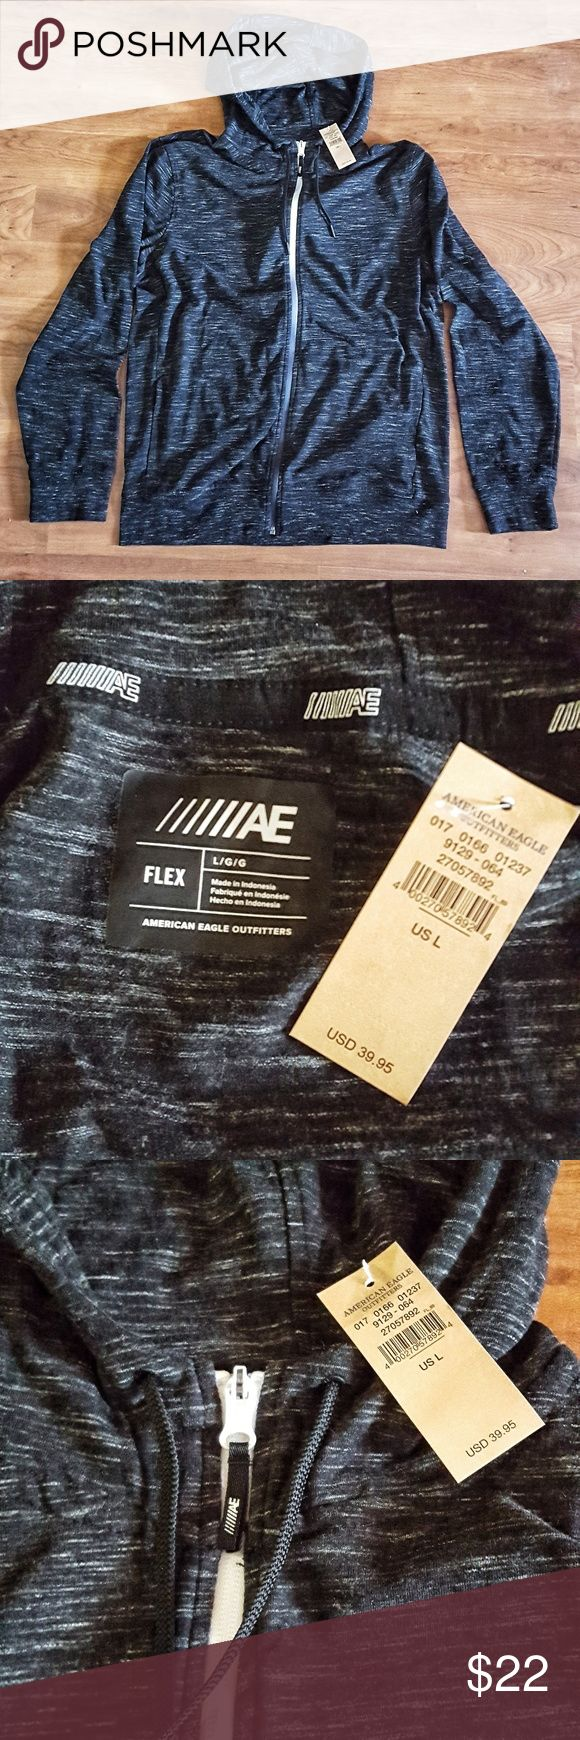 mens american eagle outfitters flex sport hoodie american eagle outfitters flex sport hoodie in black and white speck fabric white zipper and side pockets brand new with tags.. smoke free home American Eagle Outfitters Jackets & Coats Performance Jackets